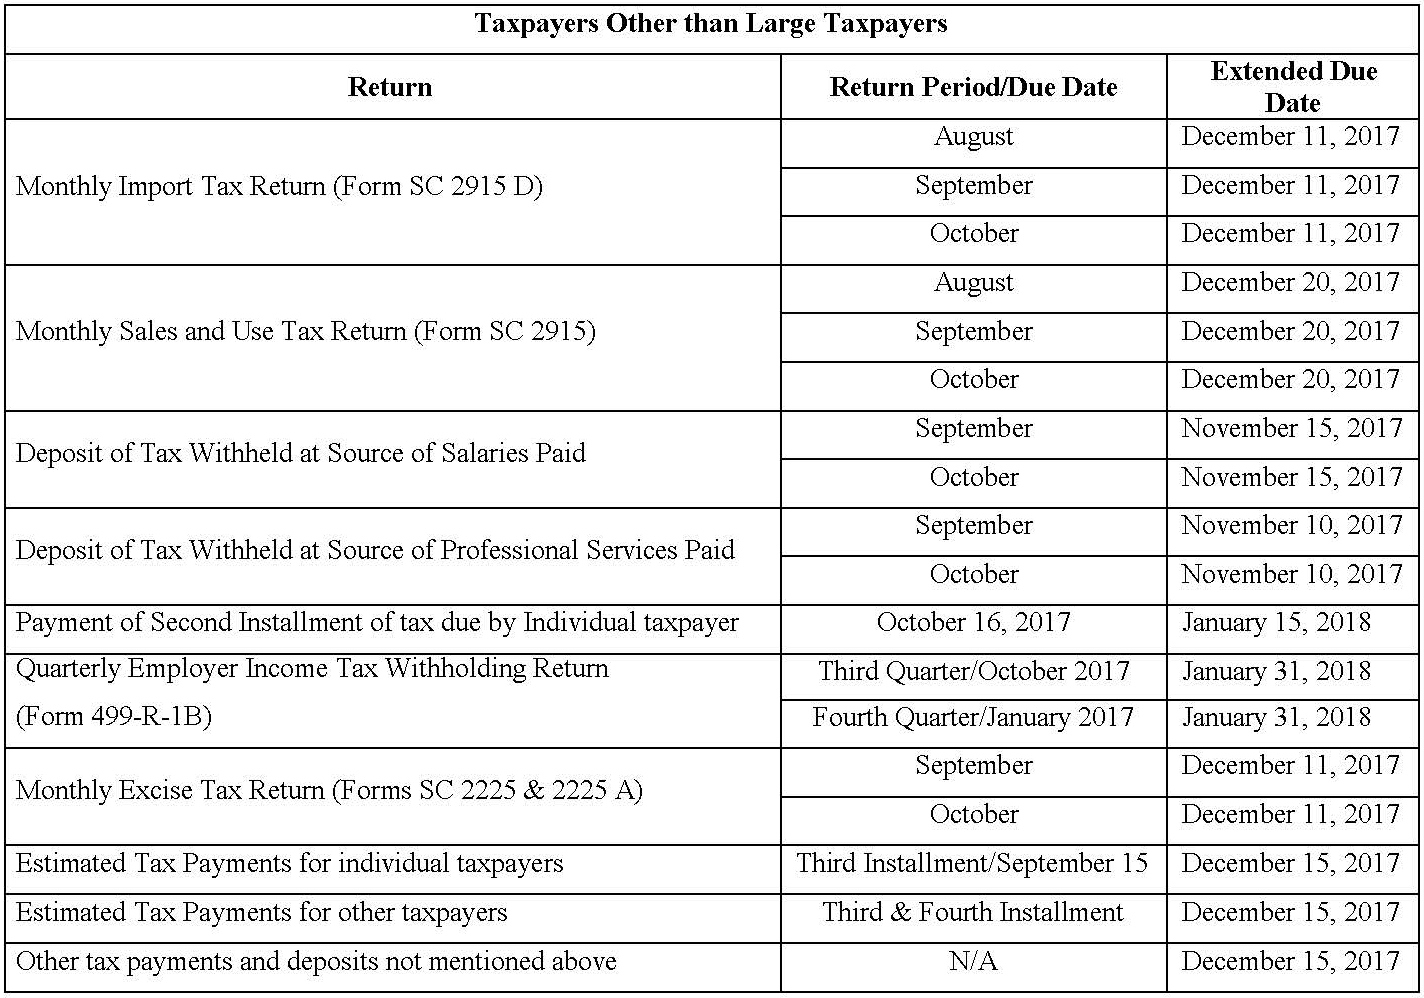 Puerto rico treasury department postponement of due dates for a large taxpayer as defined under section 101001a35 of the puerto rico internal revenue code of 2011 as amended is any taxpayer engaged in trade or 1betcityfo Images